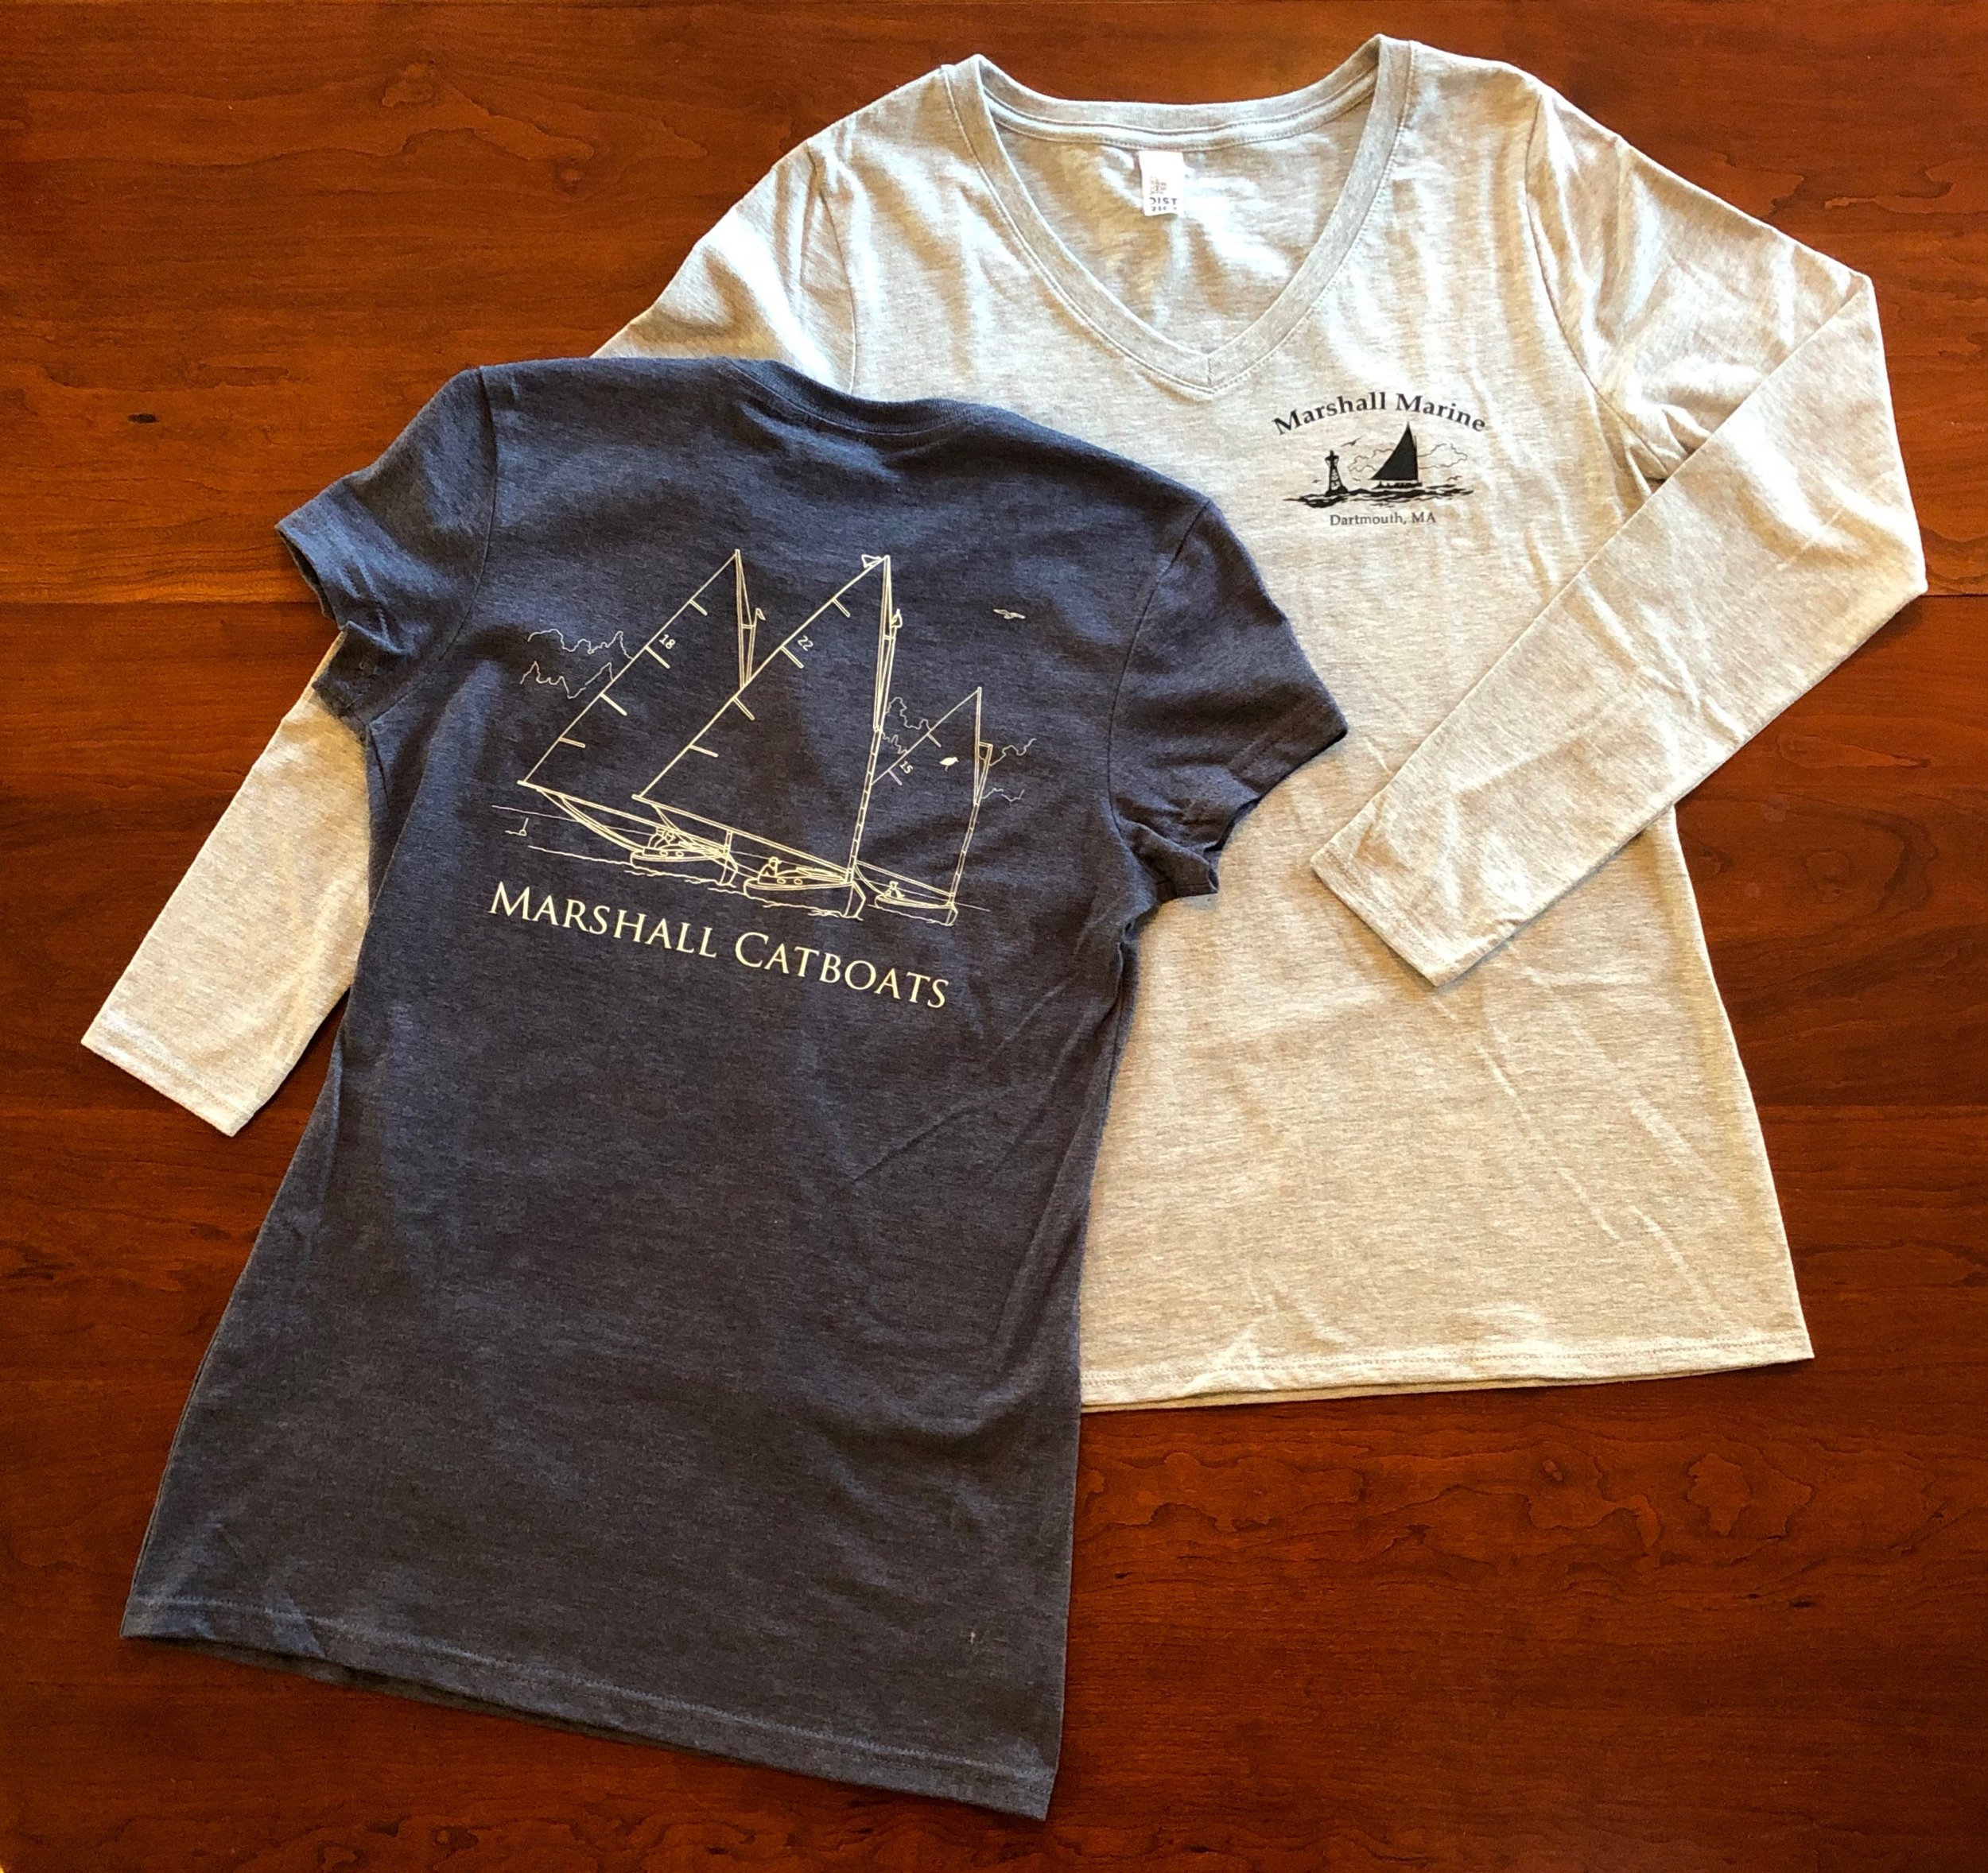 "Women's T Shirts - District ""Very Important Tees""Short sleeve crew neck in heathered blue4.3 oz. 50/50 ring spun combed cotton/poly; sizing runs small, order size up unless you like them very ""fitted.""XS - 2XL $15.00Long sleeve V-neck in light heathered grey4.3 oz 90/10 ring spun combed cotton/poly; true to sizeSmall - XL $20.00"